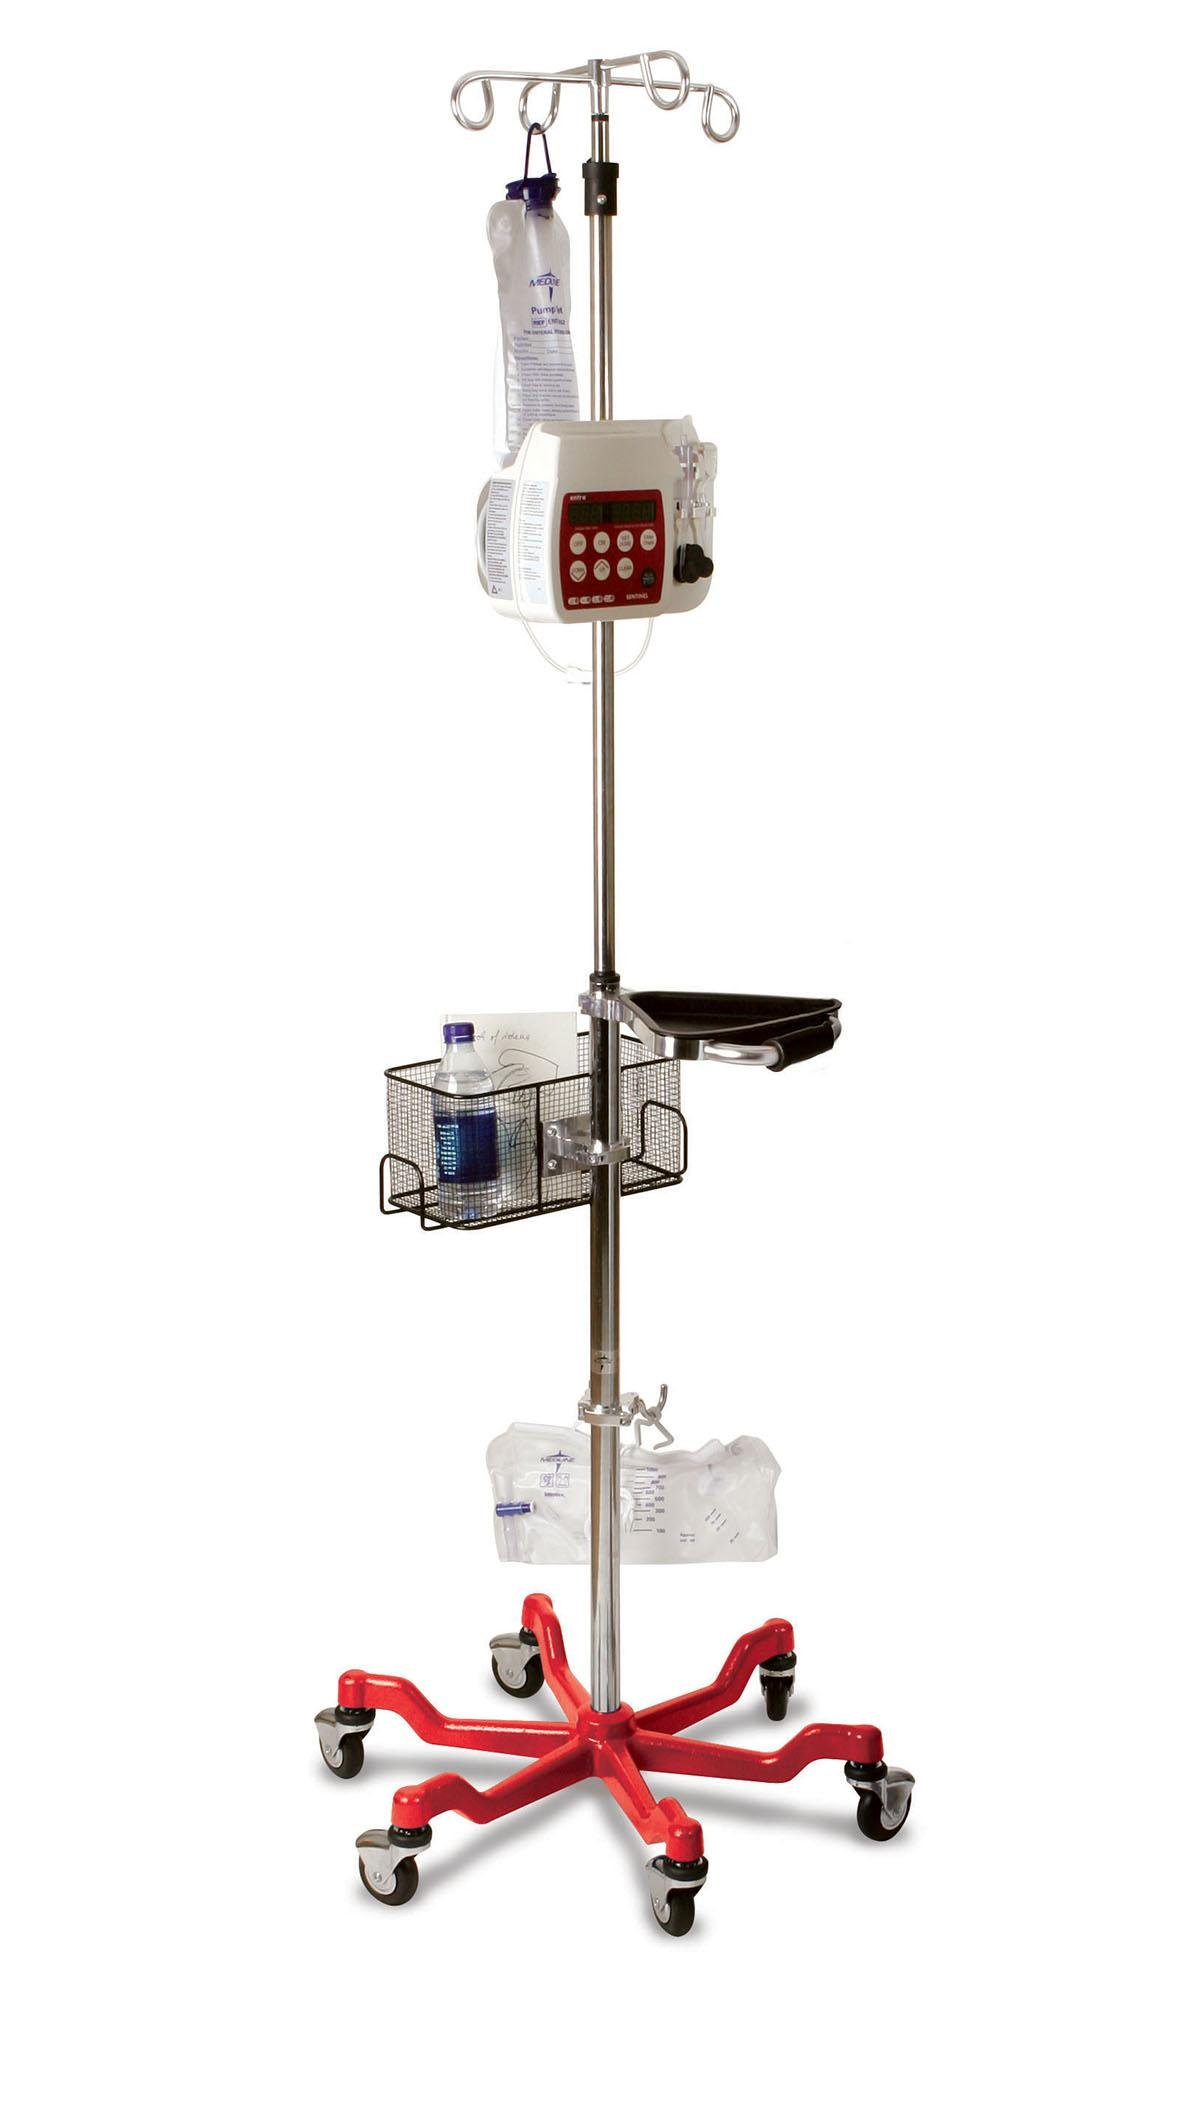 Medline MDS80600RED Six Leg Heavy Duty IV Pole Stand, 4 Hook, Stainless Steel, Latex Free, 73'' to 99.5'' Adjustable Height, Black Base (Pack of 2) by Medline (Image #1)